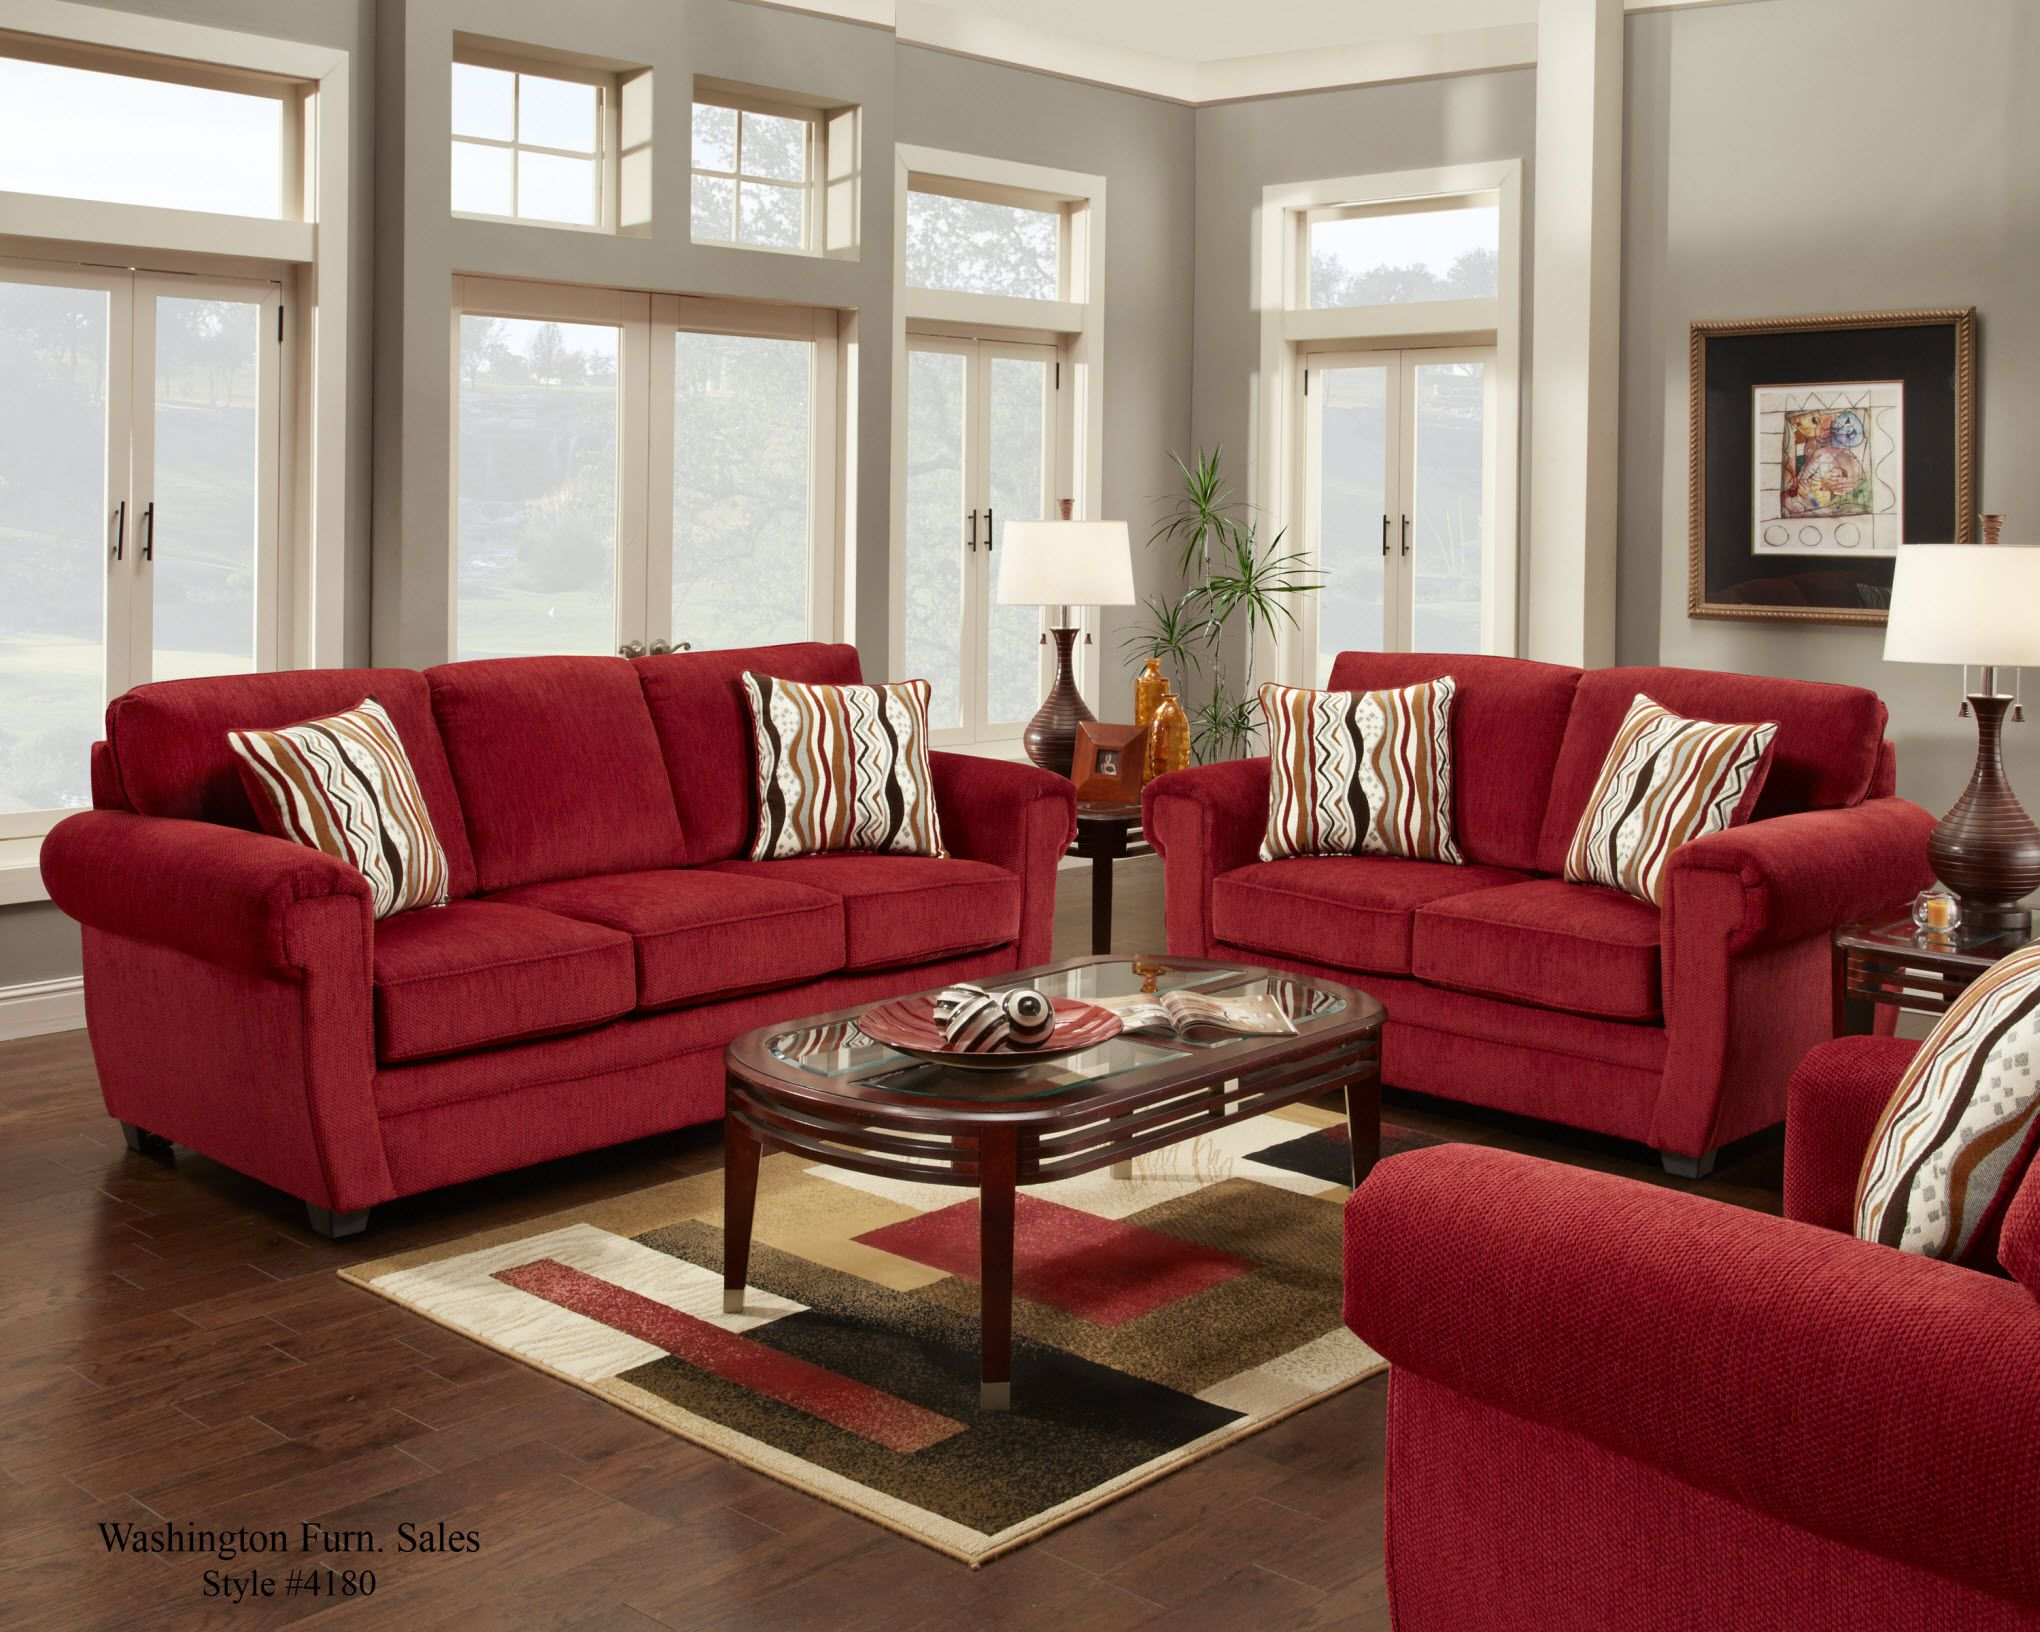 4180 washington samson red sofa and loveseat www for Living room coach